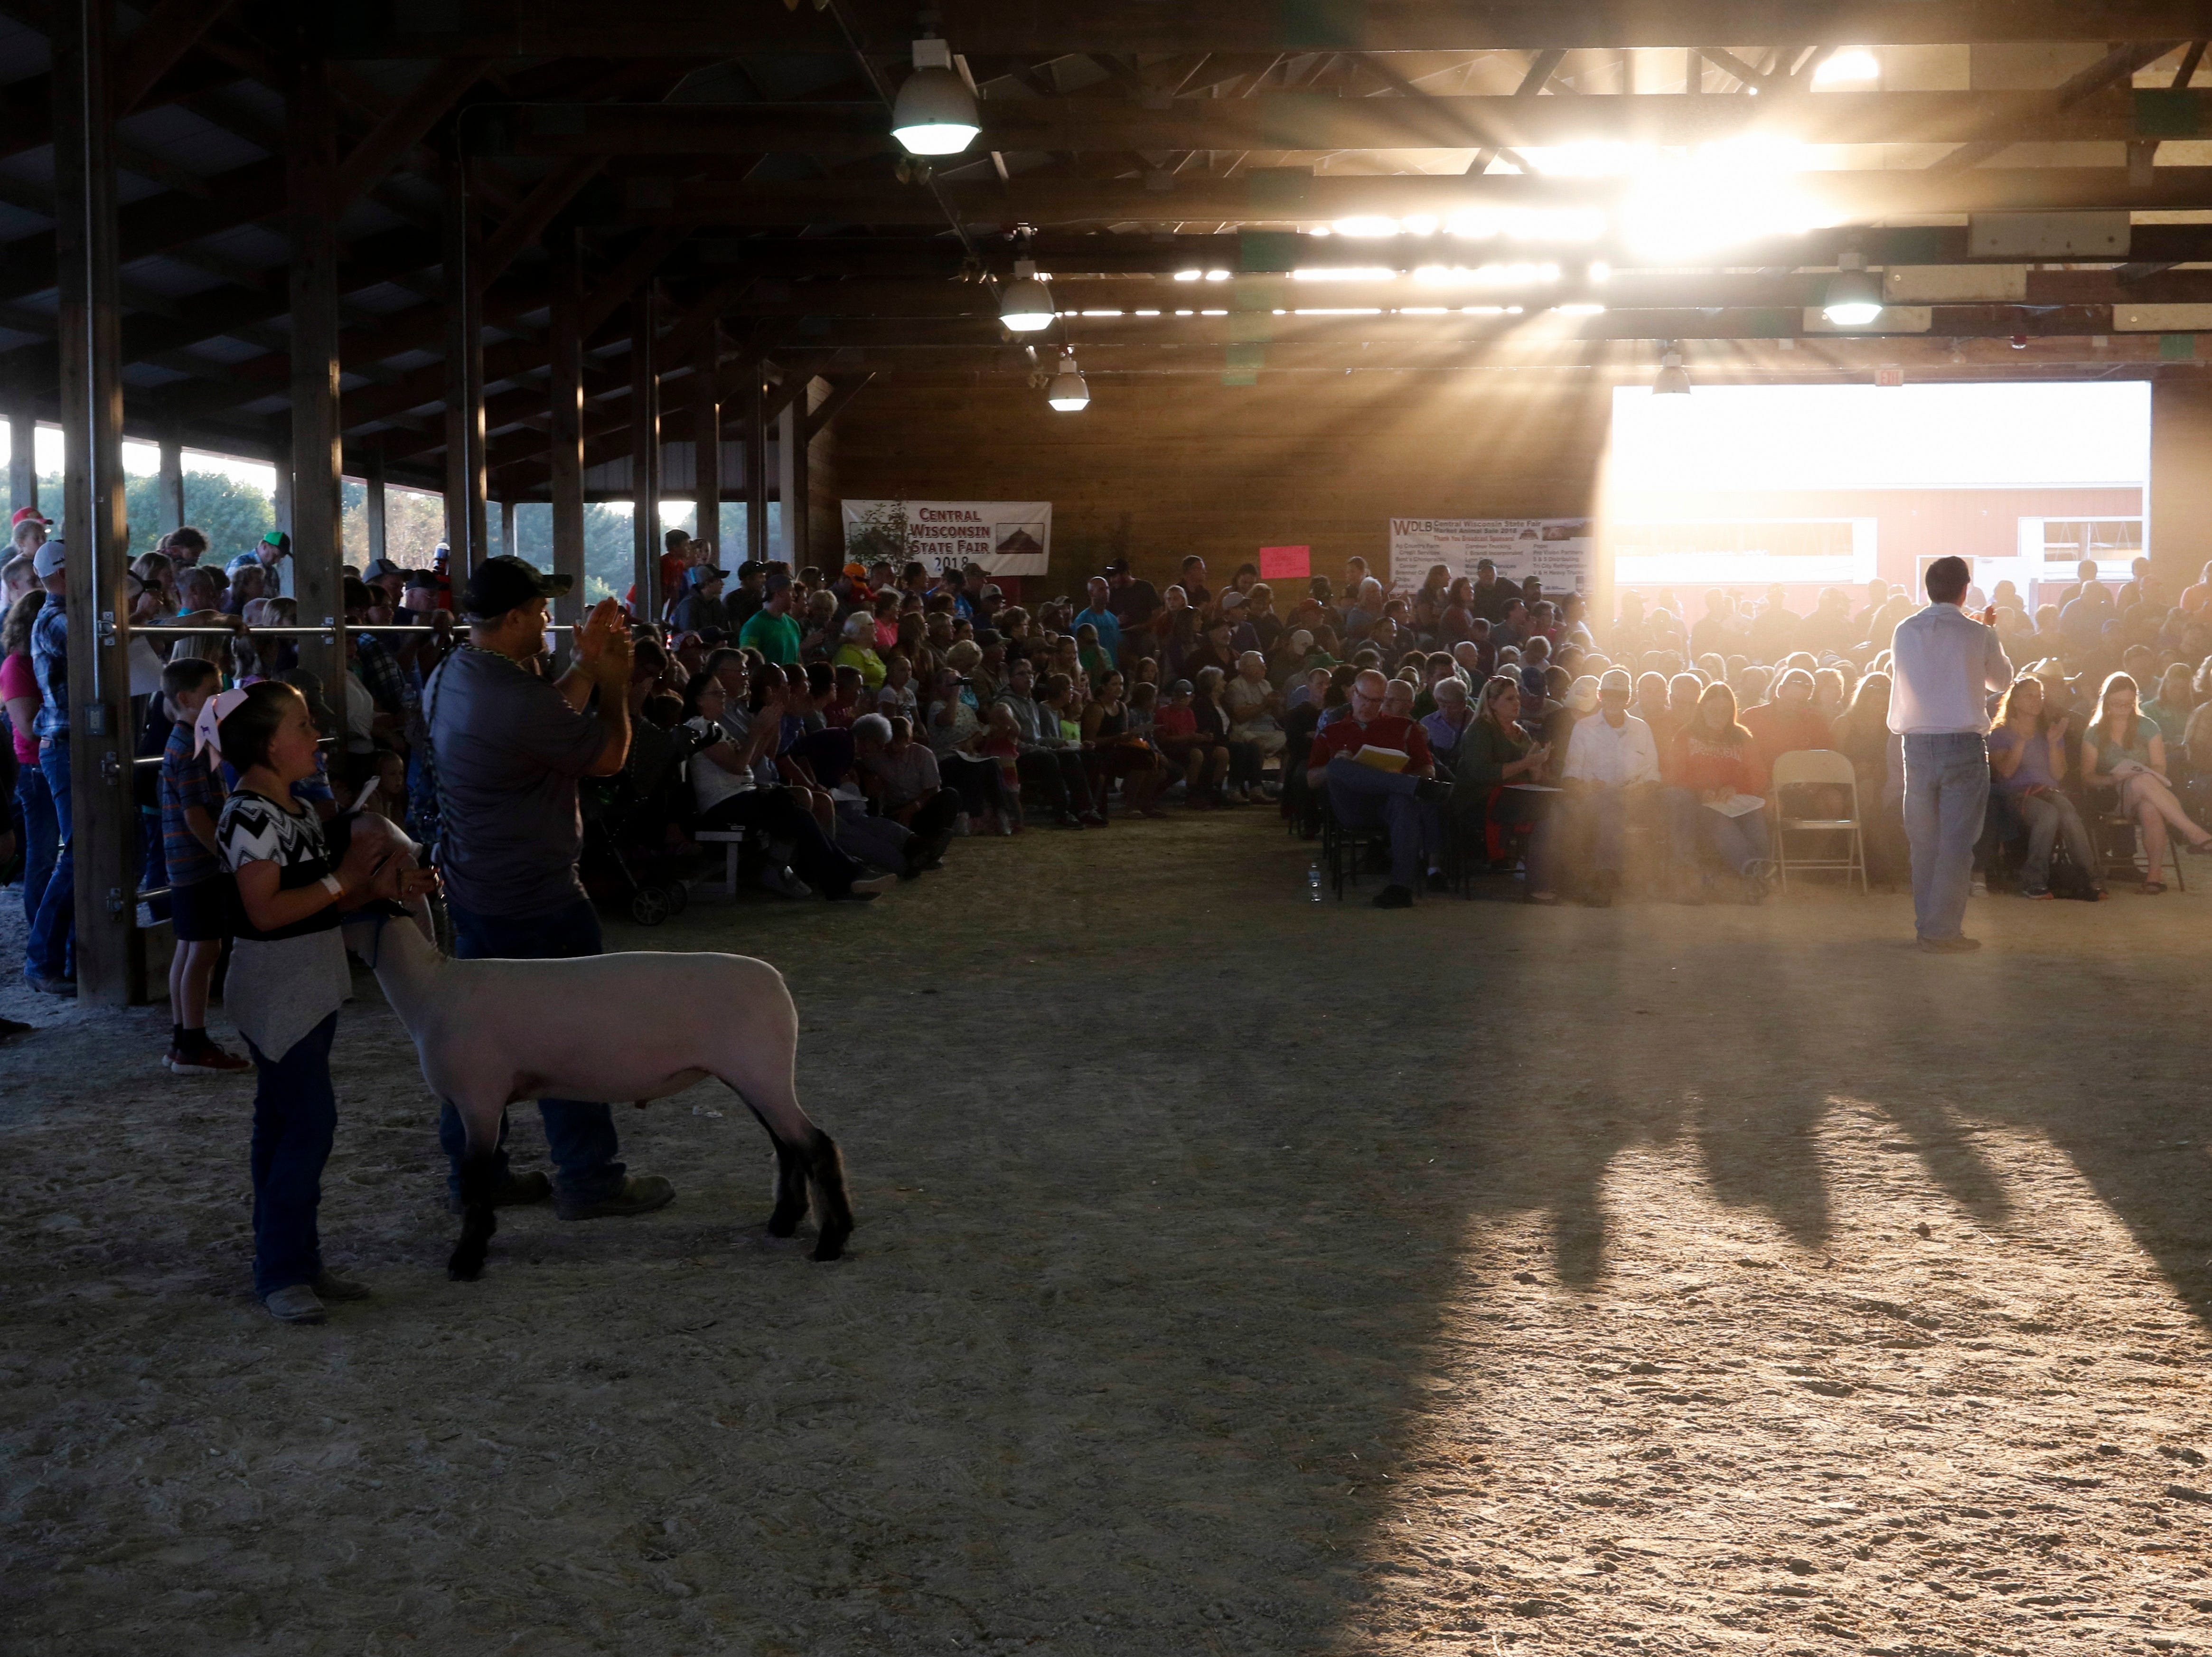 Chris Ignatowski of Iggy's Auction, right, takes bids during the market animal sale at the Central Wisconsin State Fair in Marshfield Wednesday, August 22, 2018.